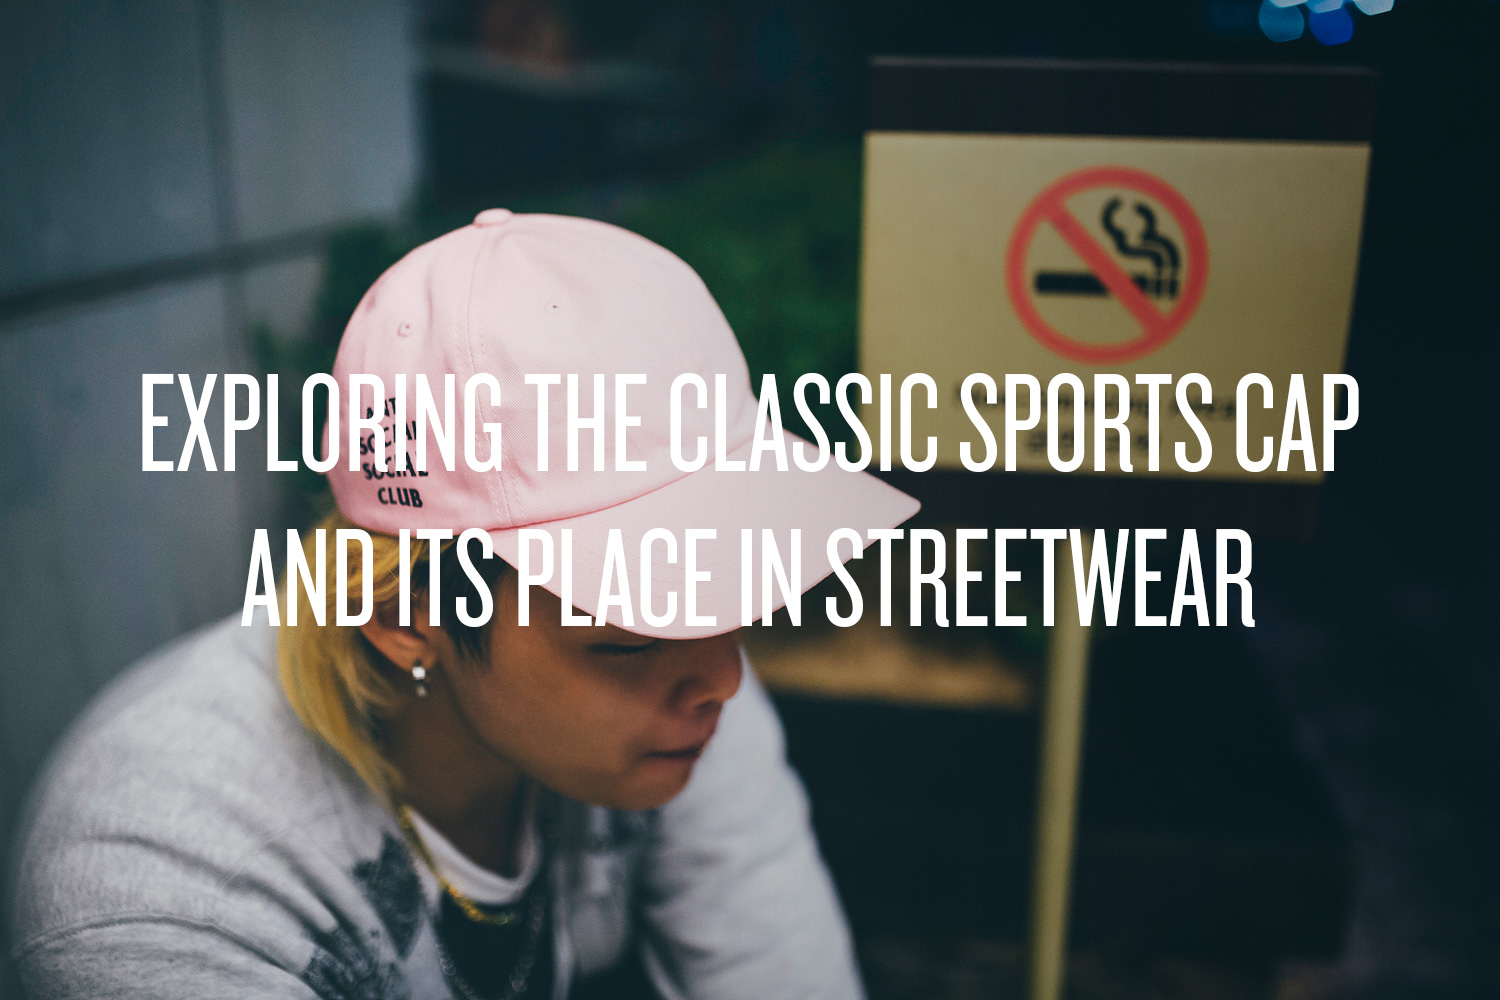 Exploring the Classic Sports Cap and Its Place in Streetwear